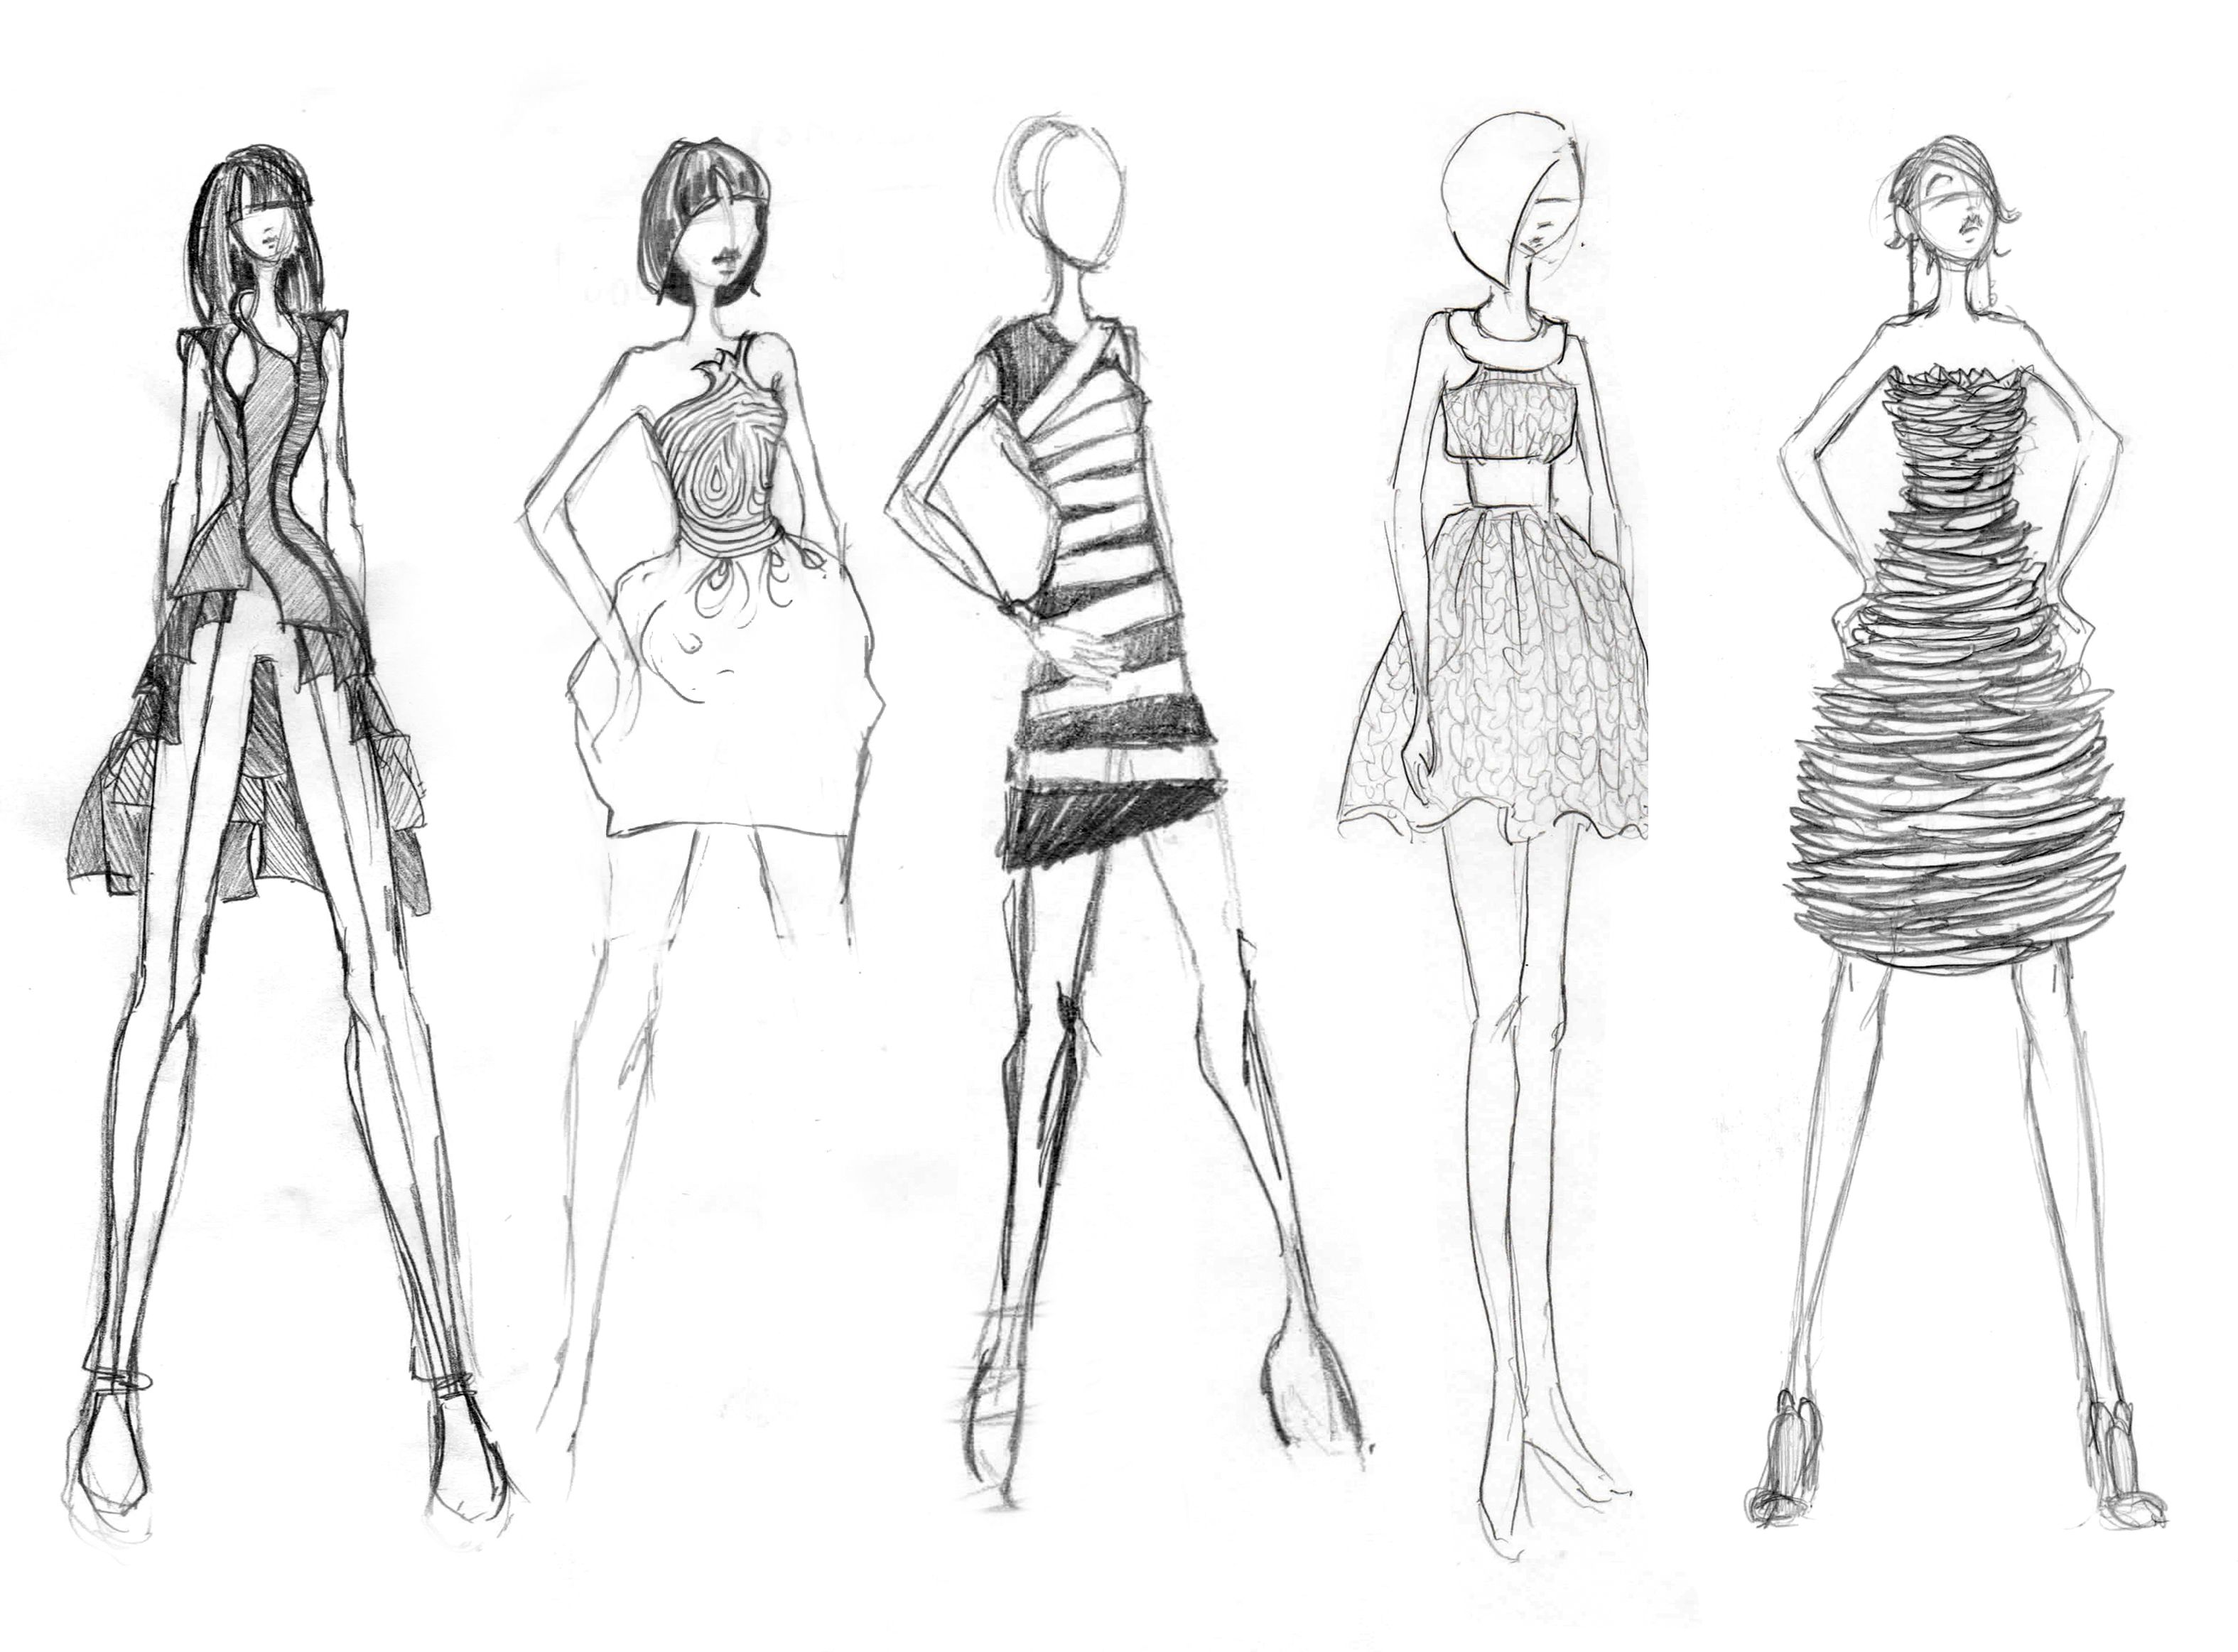 7 Steps To Create Your Own Fashion Line In 2020 Fashion Illustrations Techniques Fashion Design Sketches Fashion Sketch Template